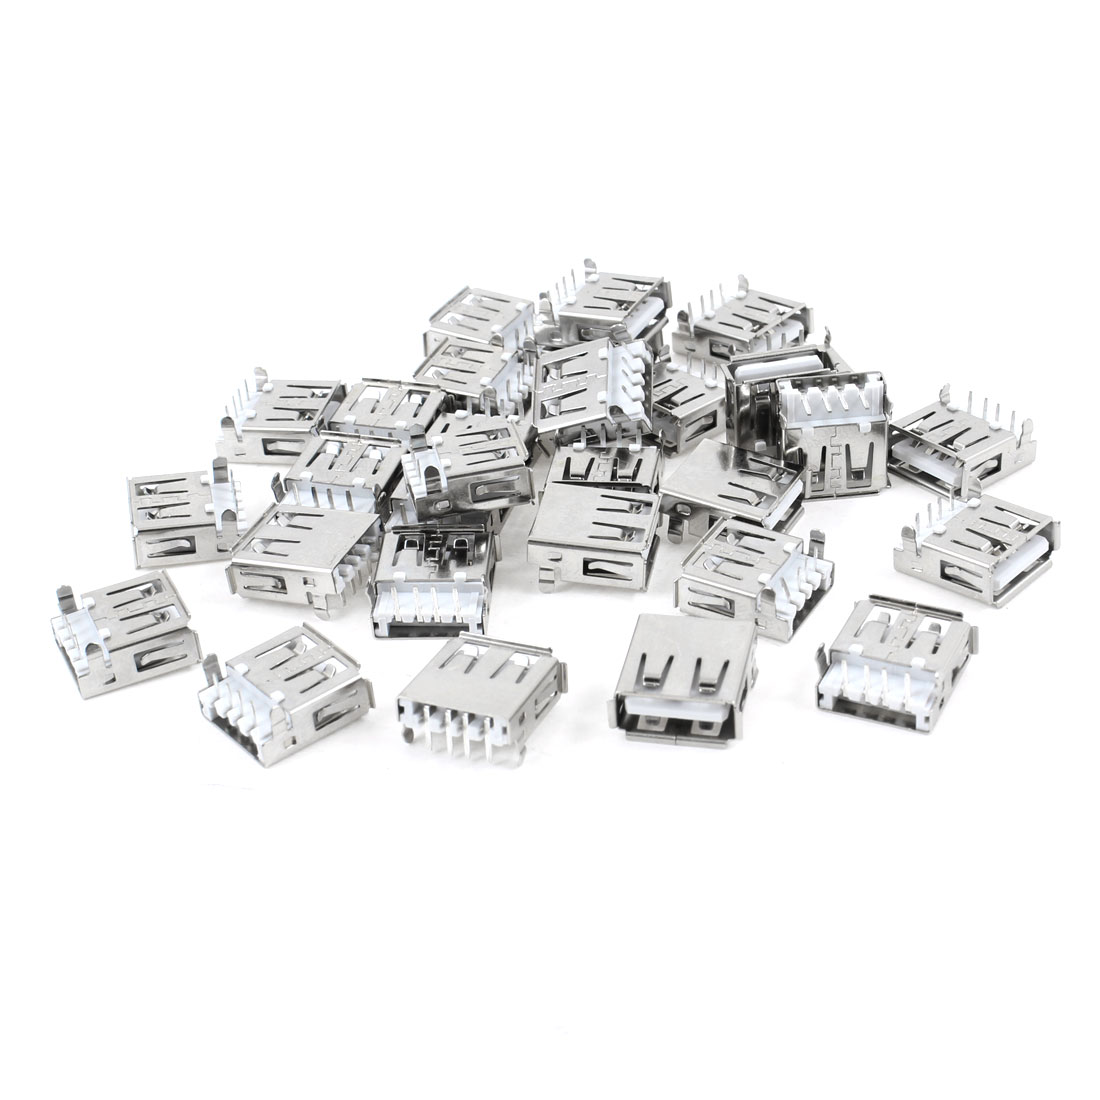 30 Pcs Shielded USB 2.0 Type A Right Angle 4-Pin DIP Female Jack Socket